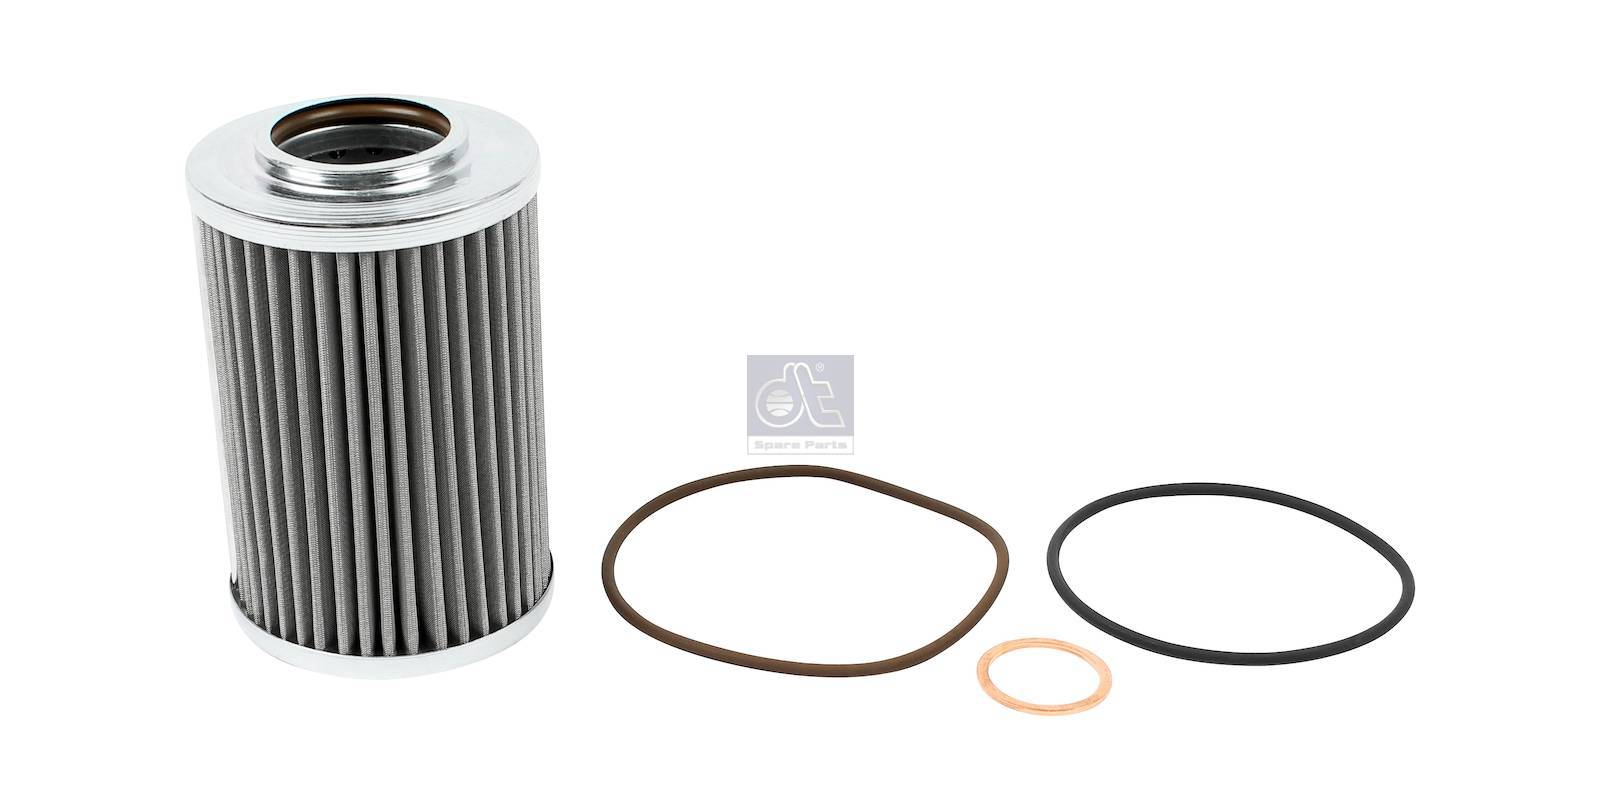 Oil filter, gearbox